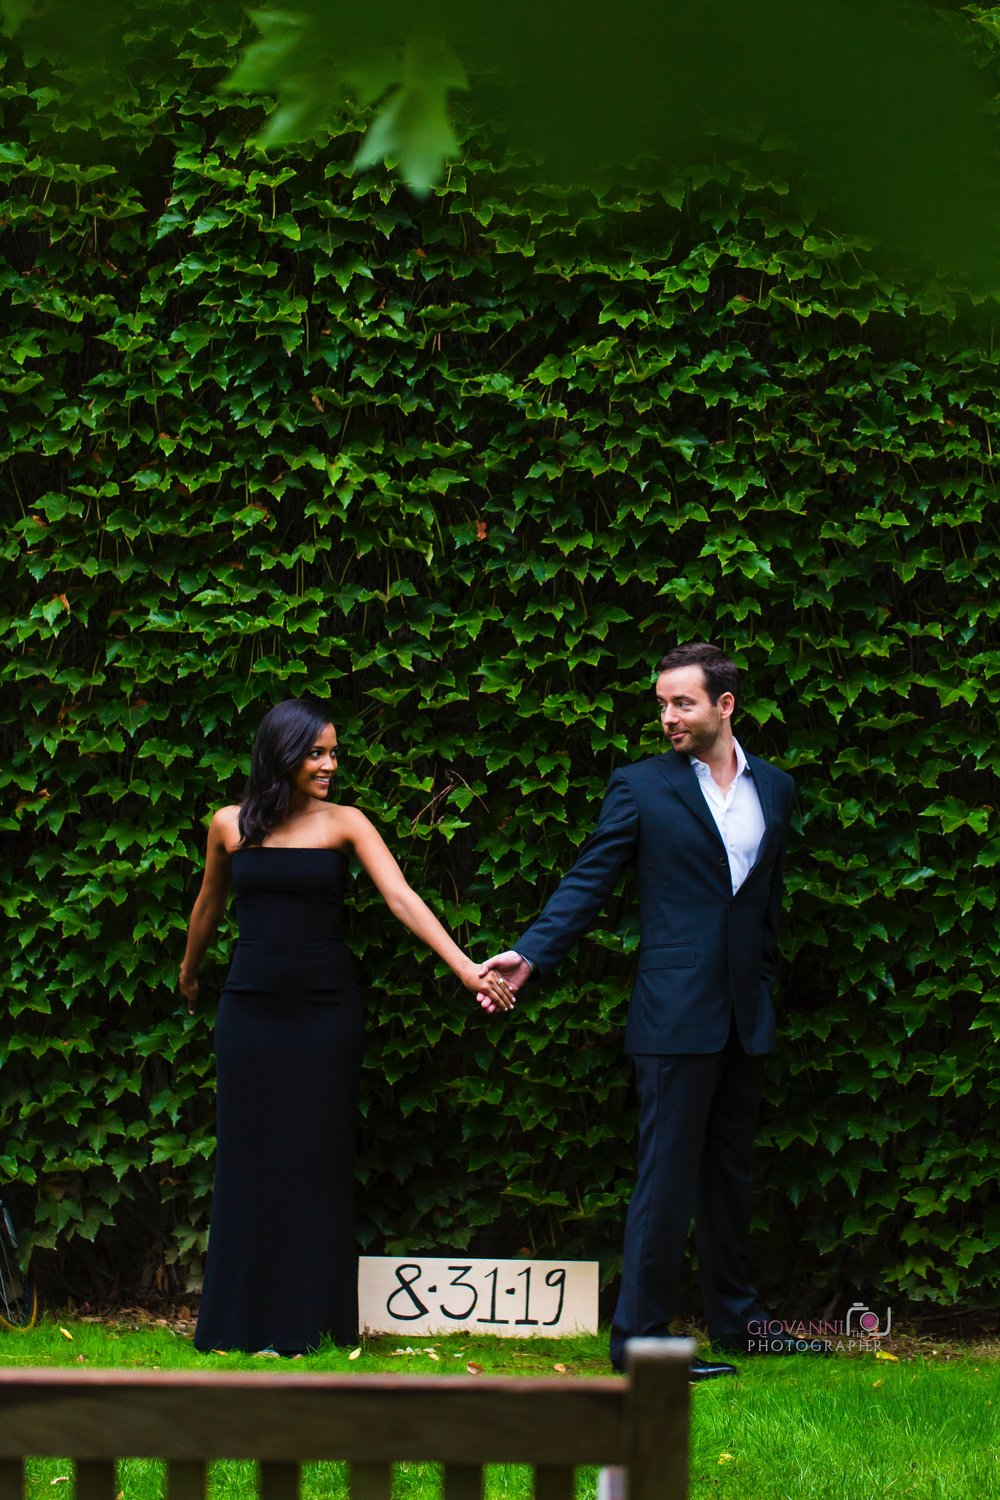 314A5848 Giovanni The Photographer Best Boston Engagement Photography Harvard Business School WM.jpg